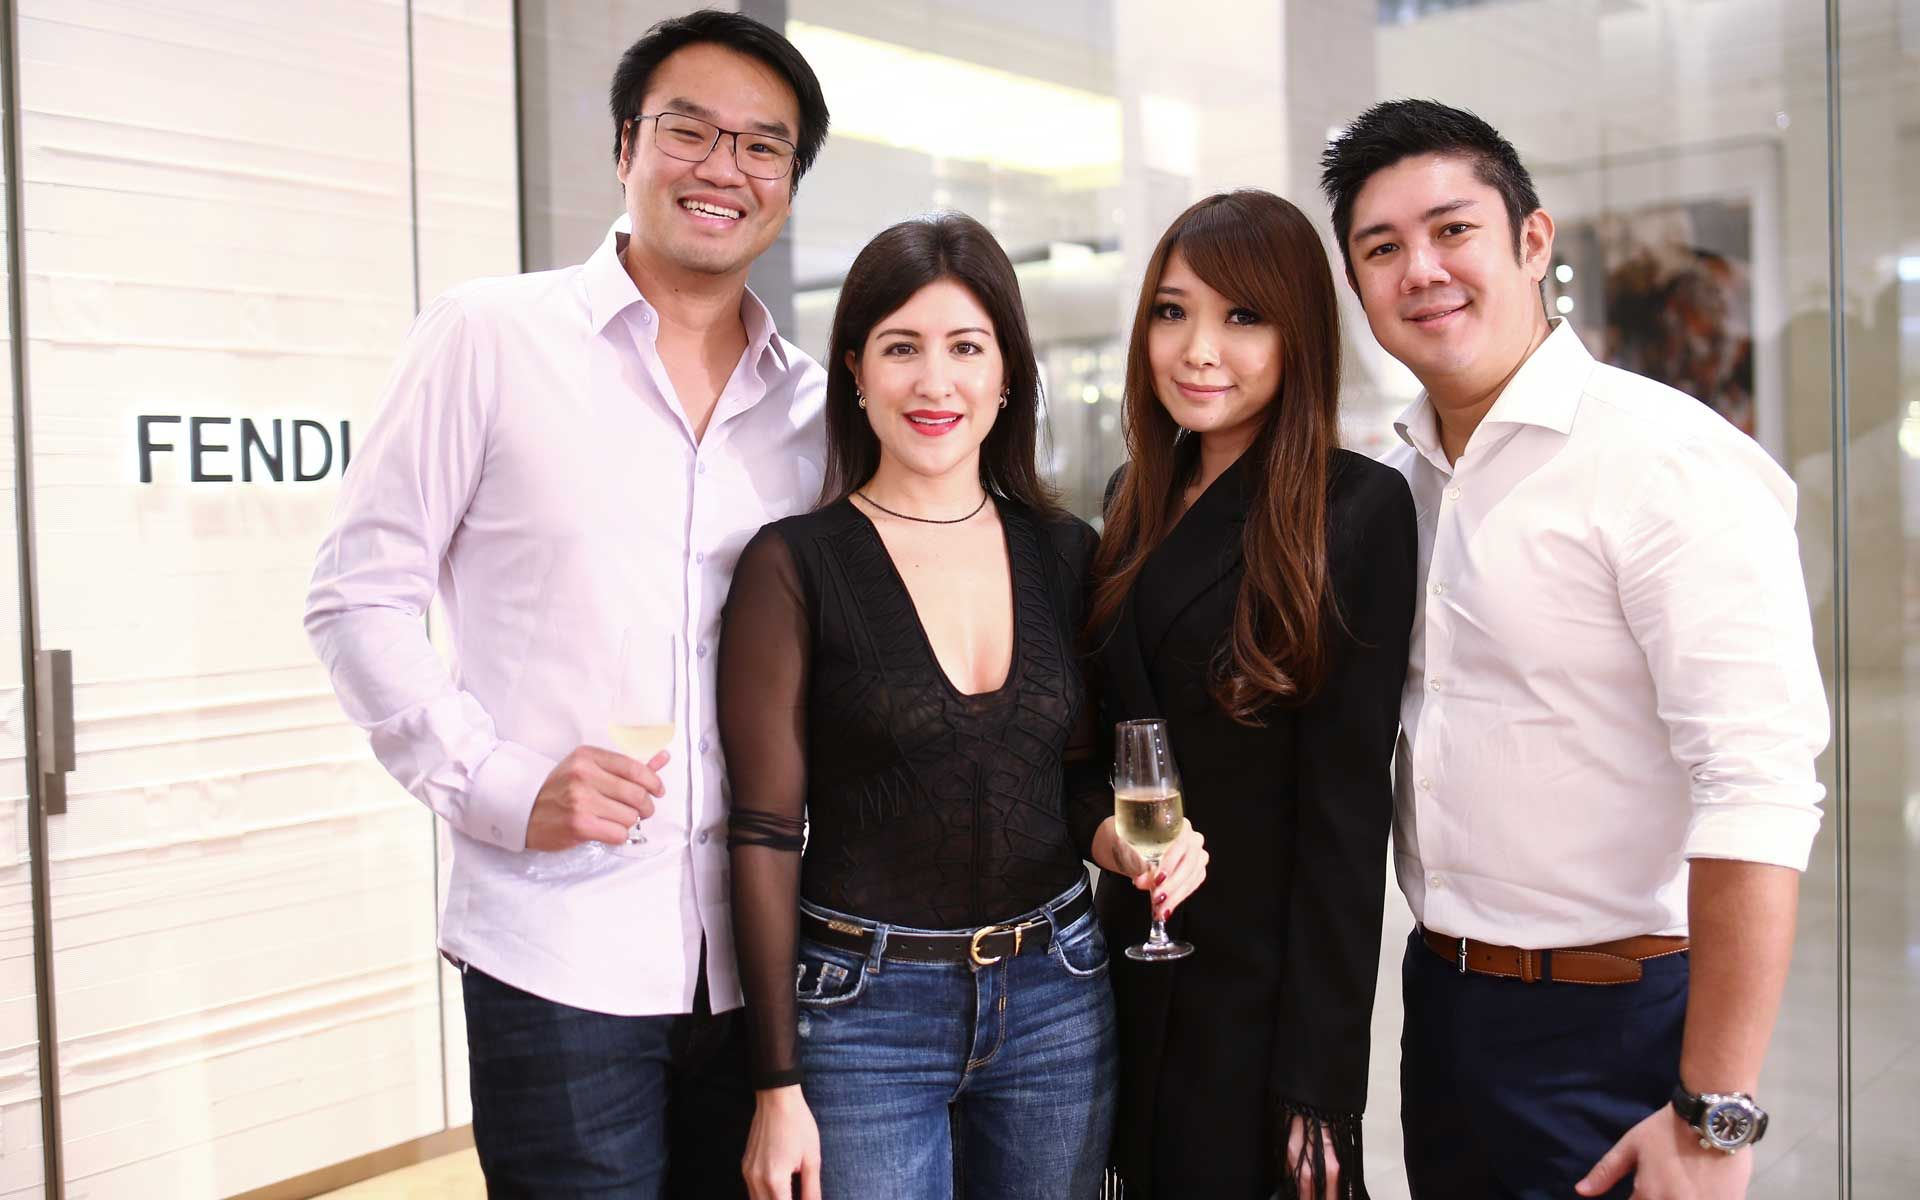 Jing Yuan Ng, Daniela Abad Ng, Melissa Lim and Christopher Tan